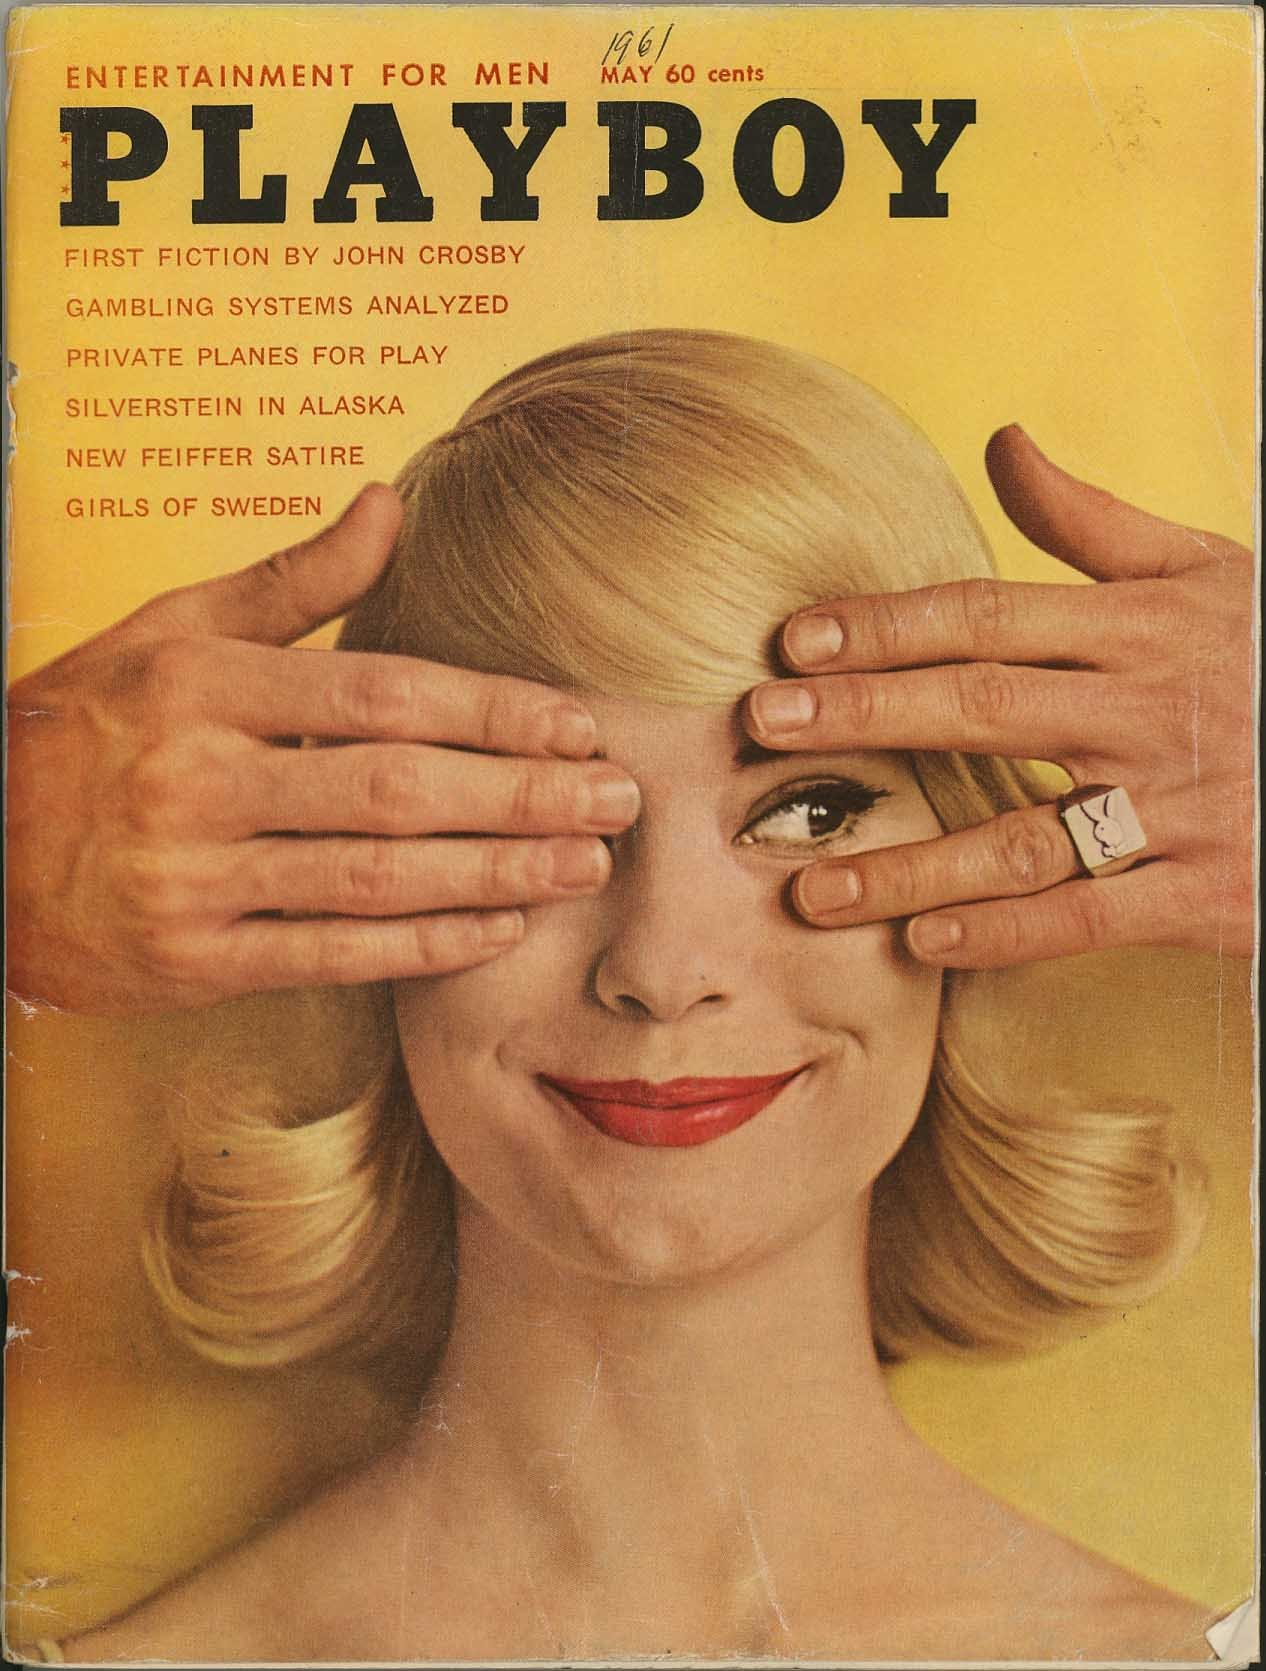 Playboy centerfold may 1960 vintage